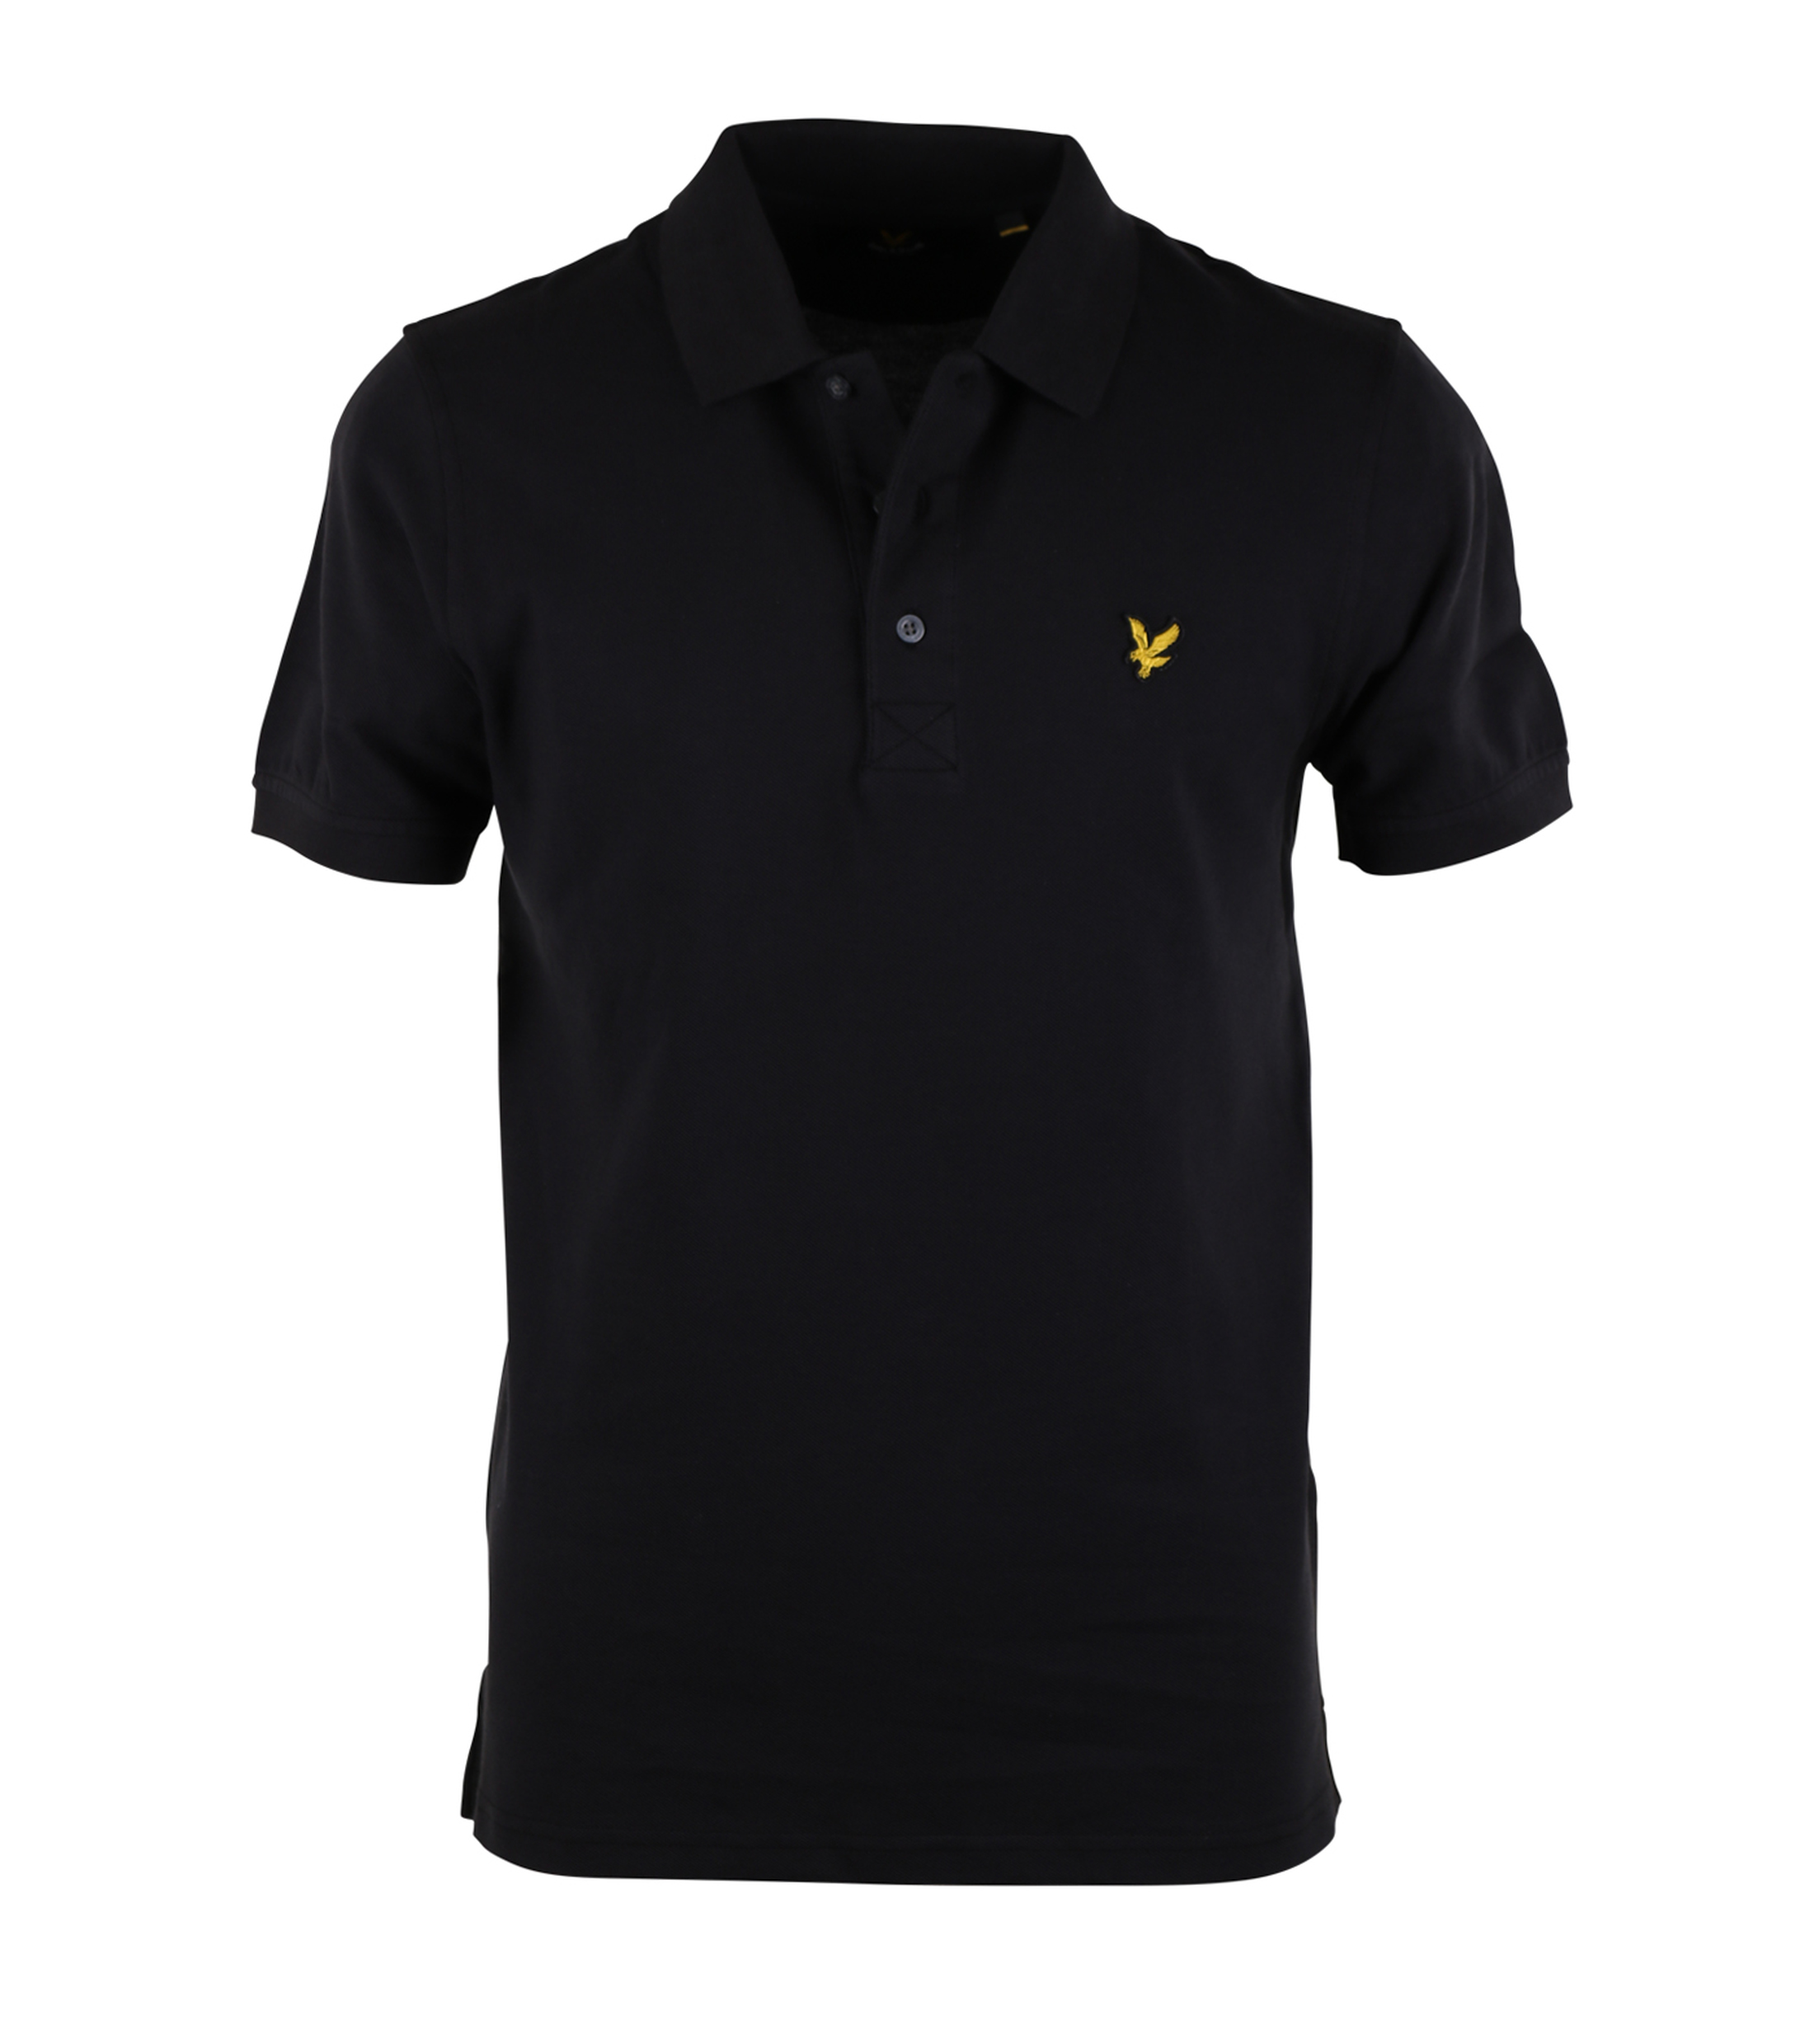 lyle scott polo shirt black. Black Bedroom Furniture Sets. Home Design Ideas